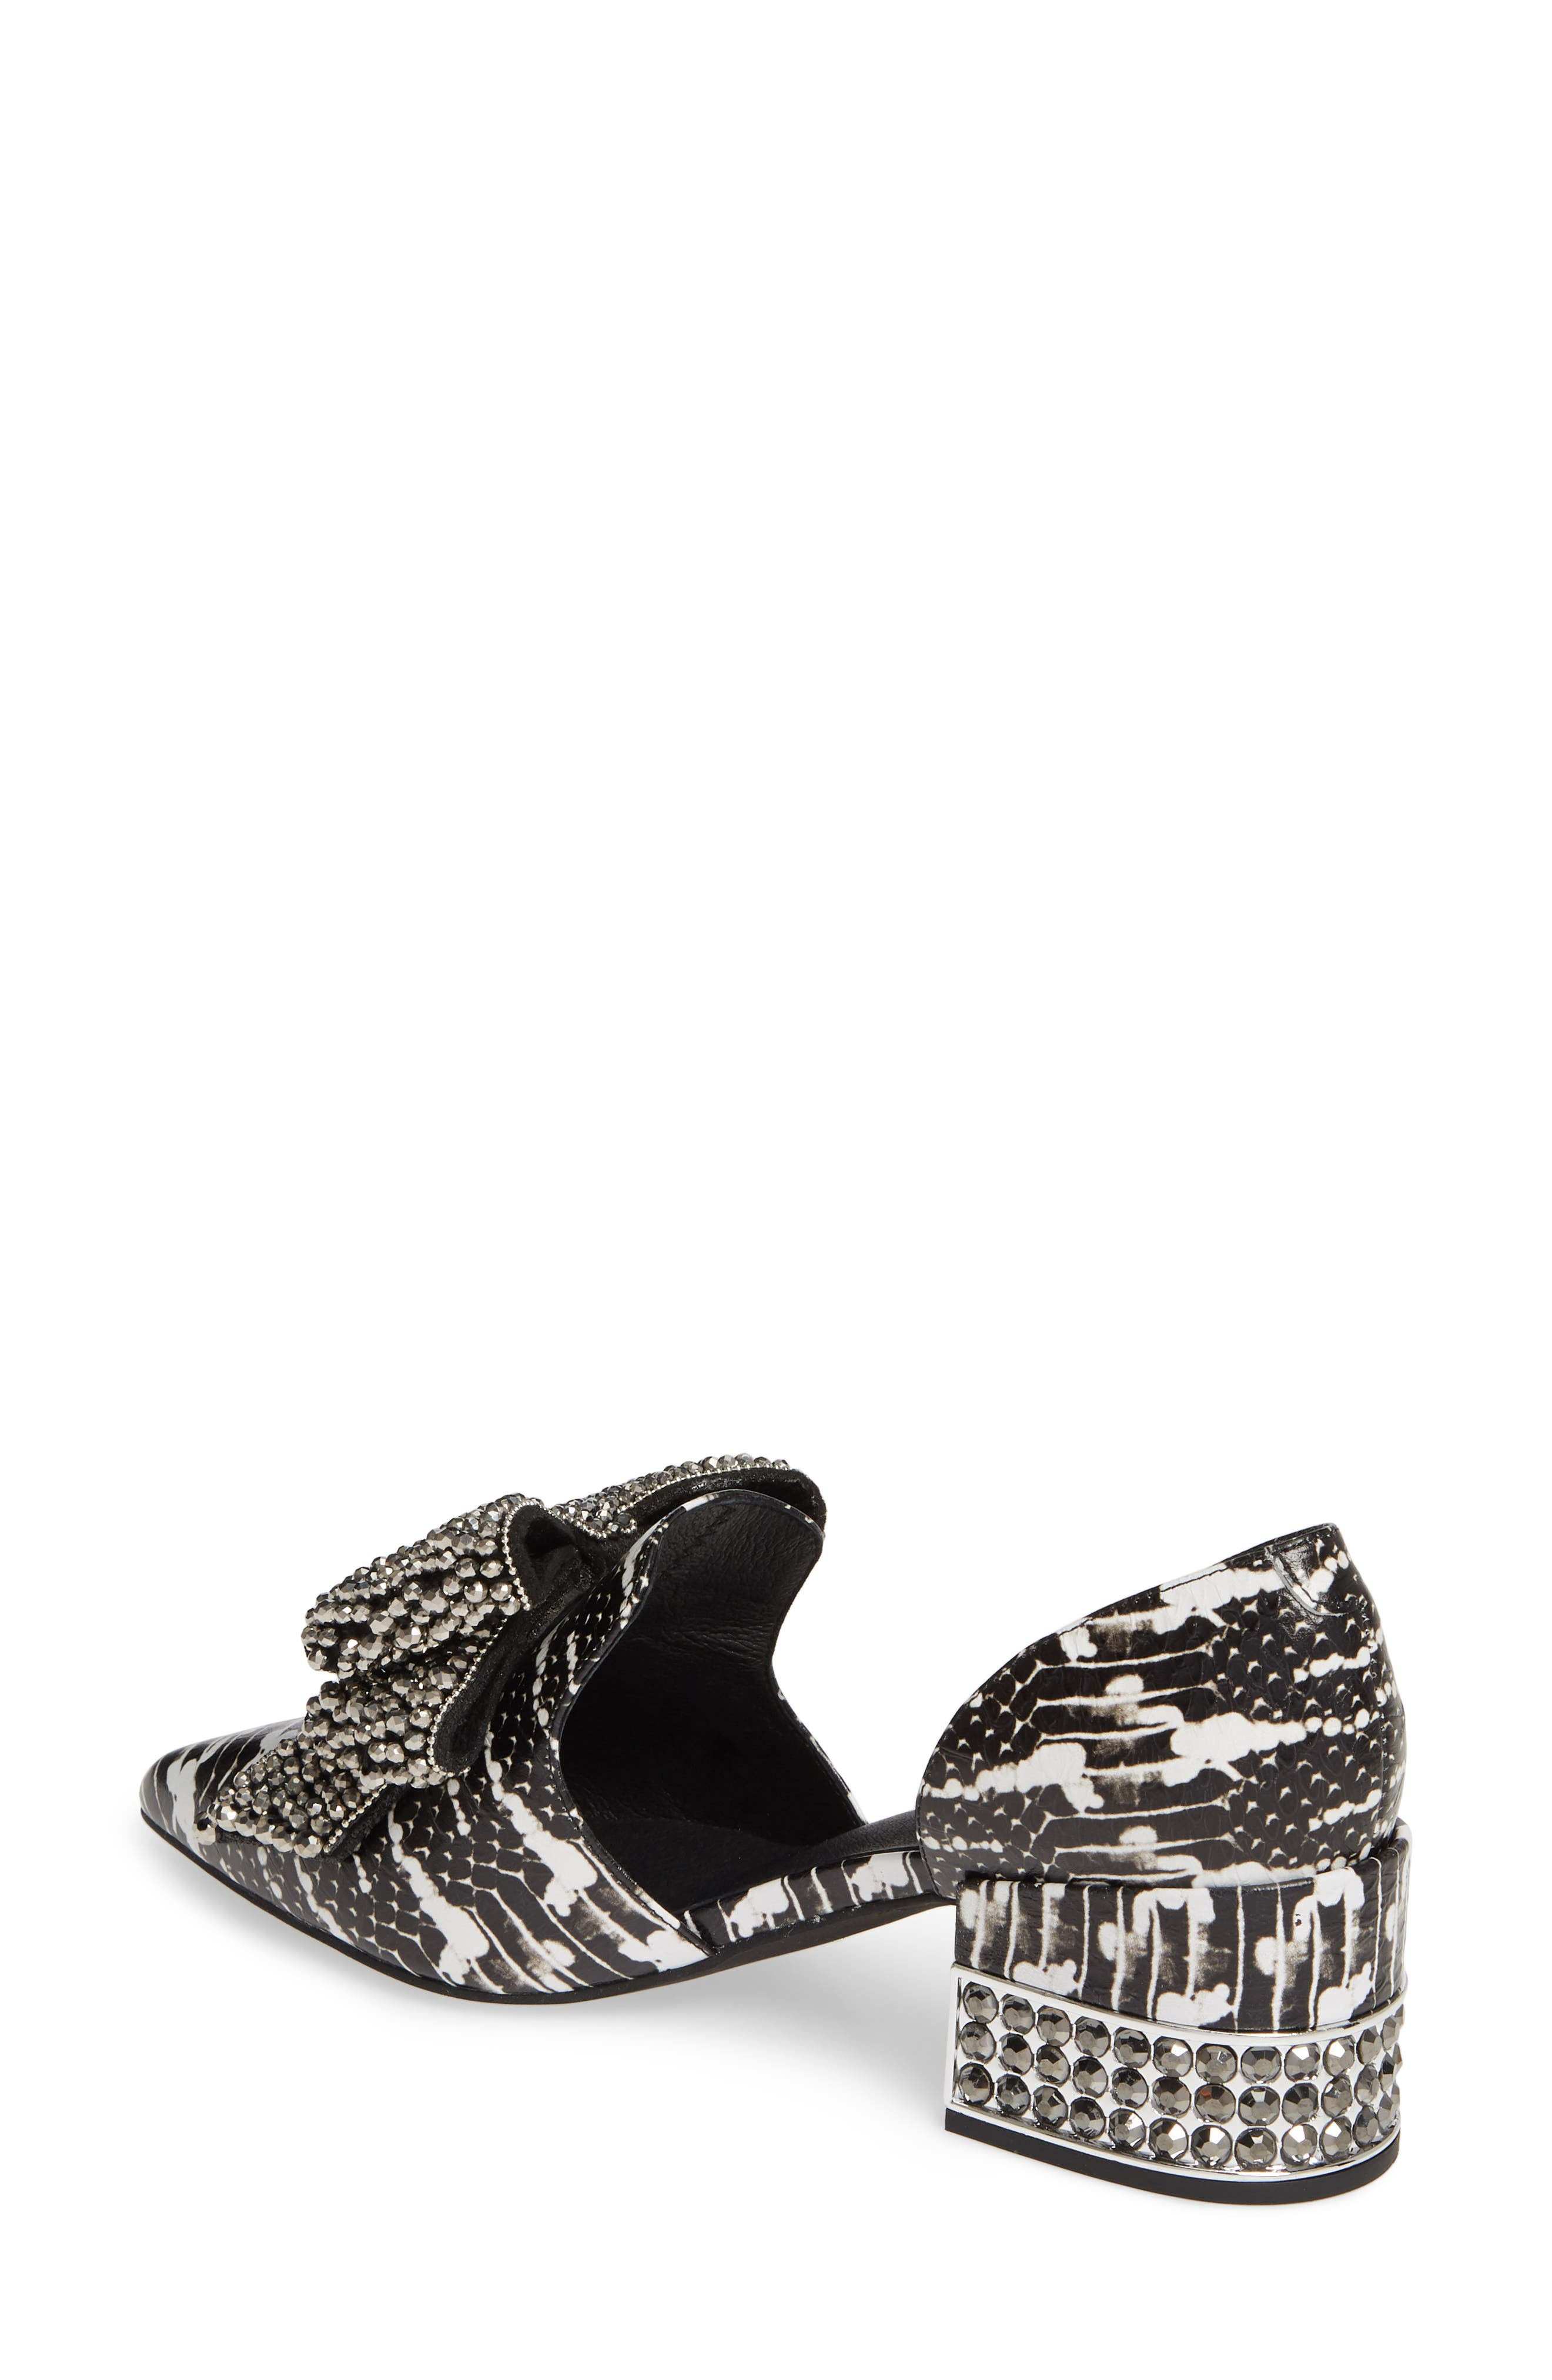 JEFFREY CAMPBELL, Valenti Embellished Bow Loafer, Alternate thumbnail 2, color, BLACK/WHITE/PEWTER